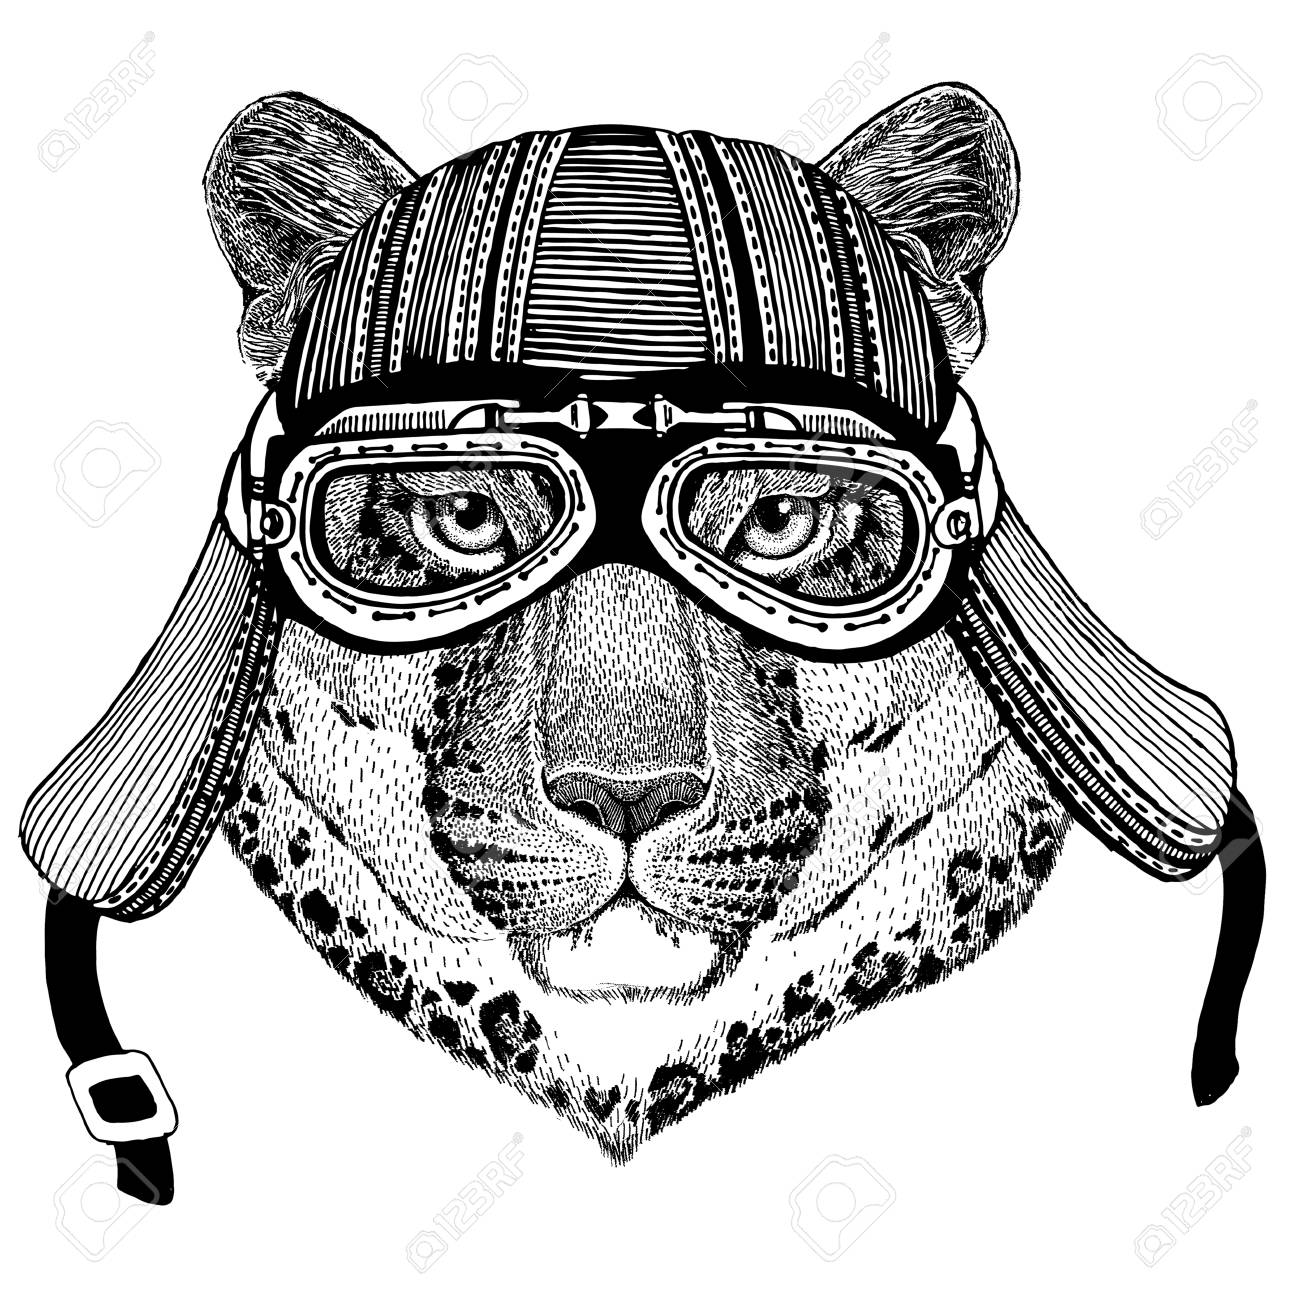 Wild cat Leopard Cat-o-mountain Panther Wild animal wearing biker motorcycle aviator fly club helmet Illustration for tattoo, emblem, badge, logo, patch - 82163361